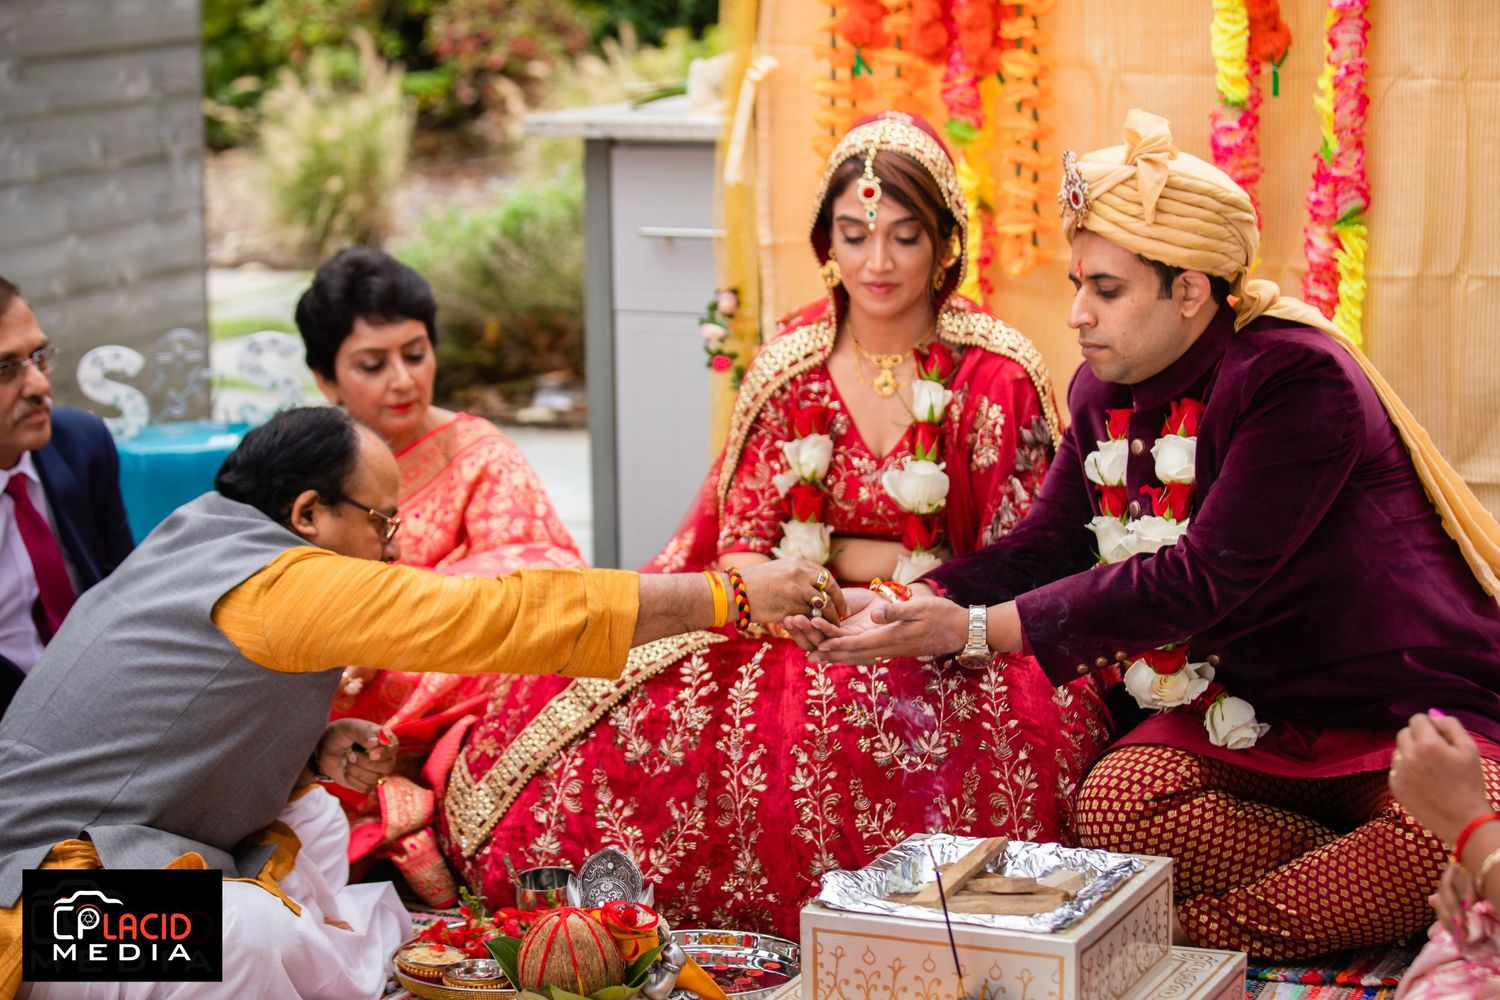 A Hindu marriage is a sacrament, not a contract.